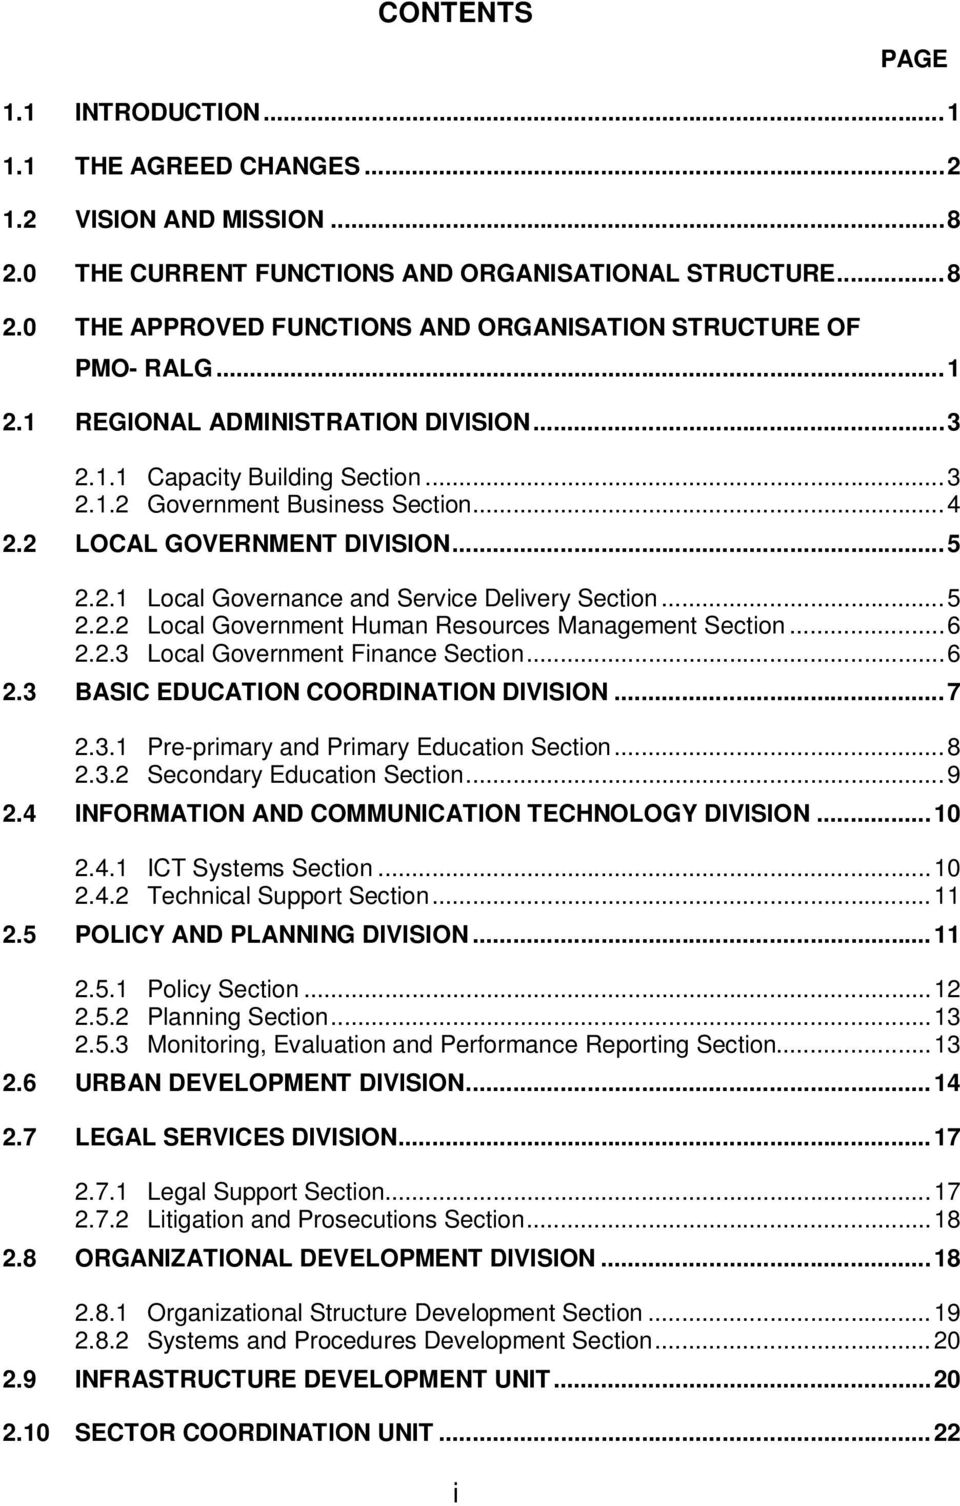 ..5 2.2.2 Local Government Human Resources Management Section...6 2.2.3 Local Government Finance Section...6 2.3 BASIC EDUCATION COORDINATION DIVISION...7 2.3.1 Pre-primary and Primary Education Section.